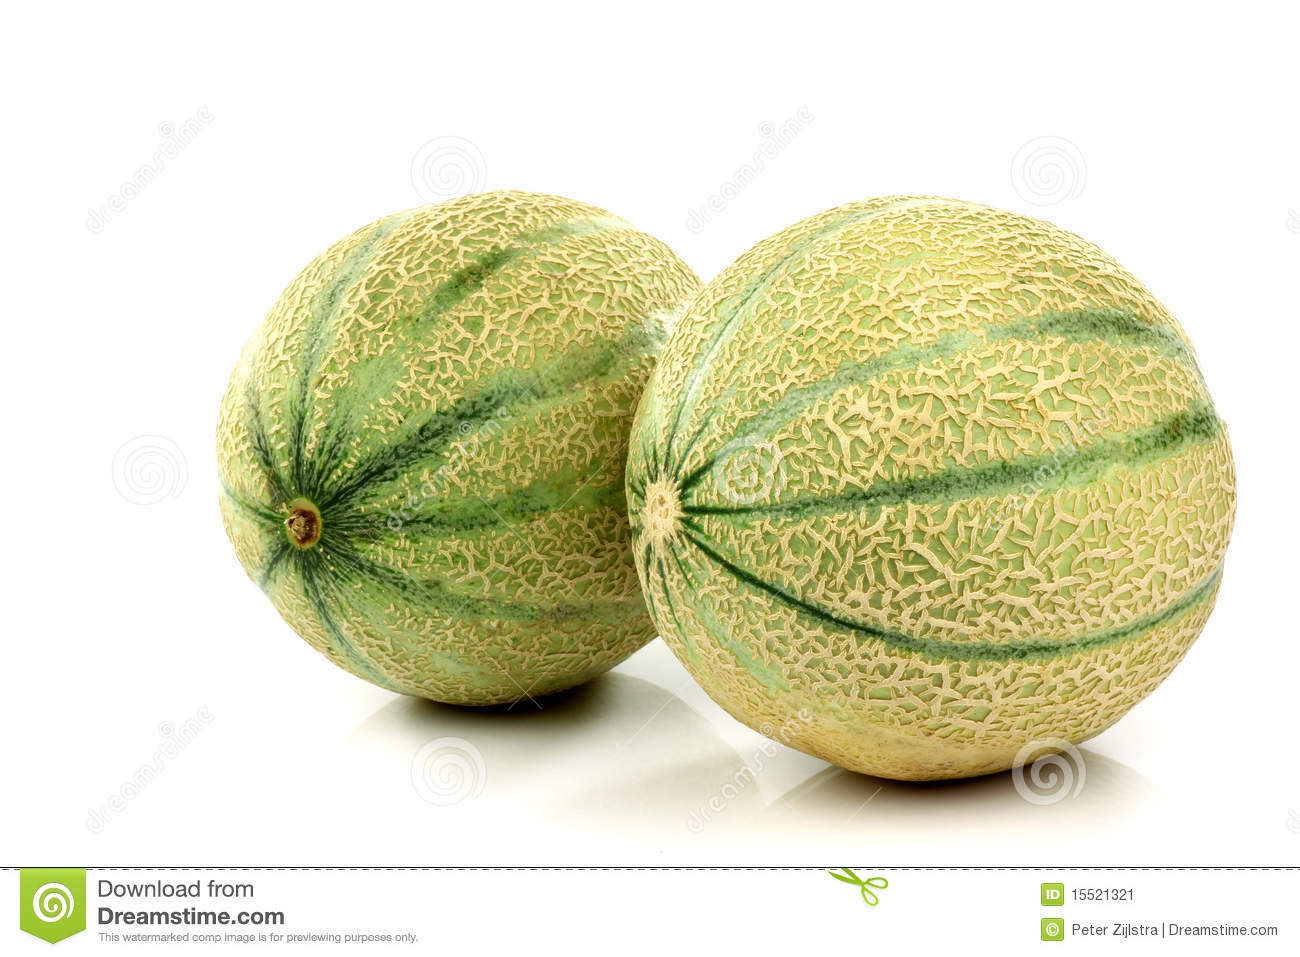 how to tell when a cantaloupe is ripe to eat